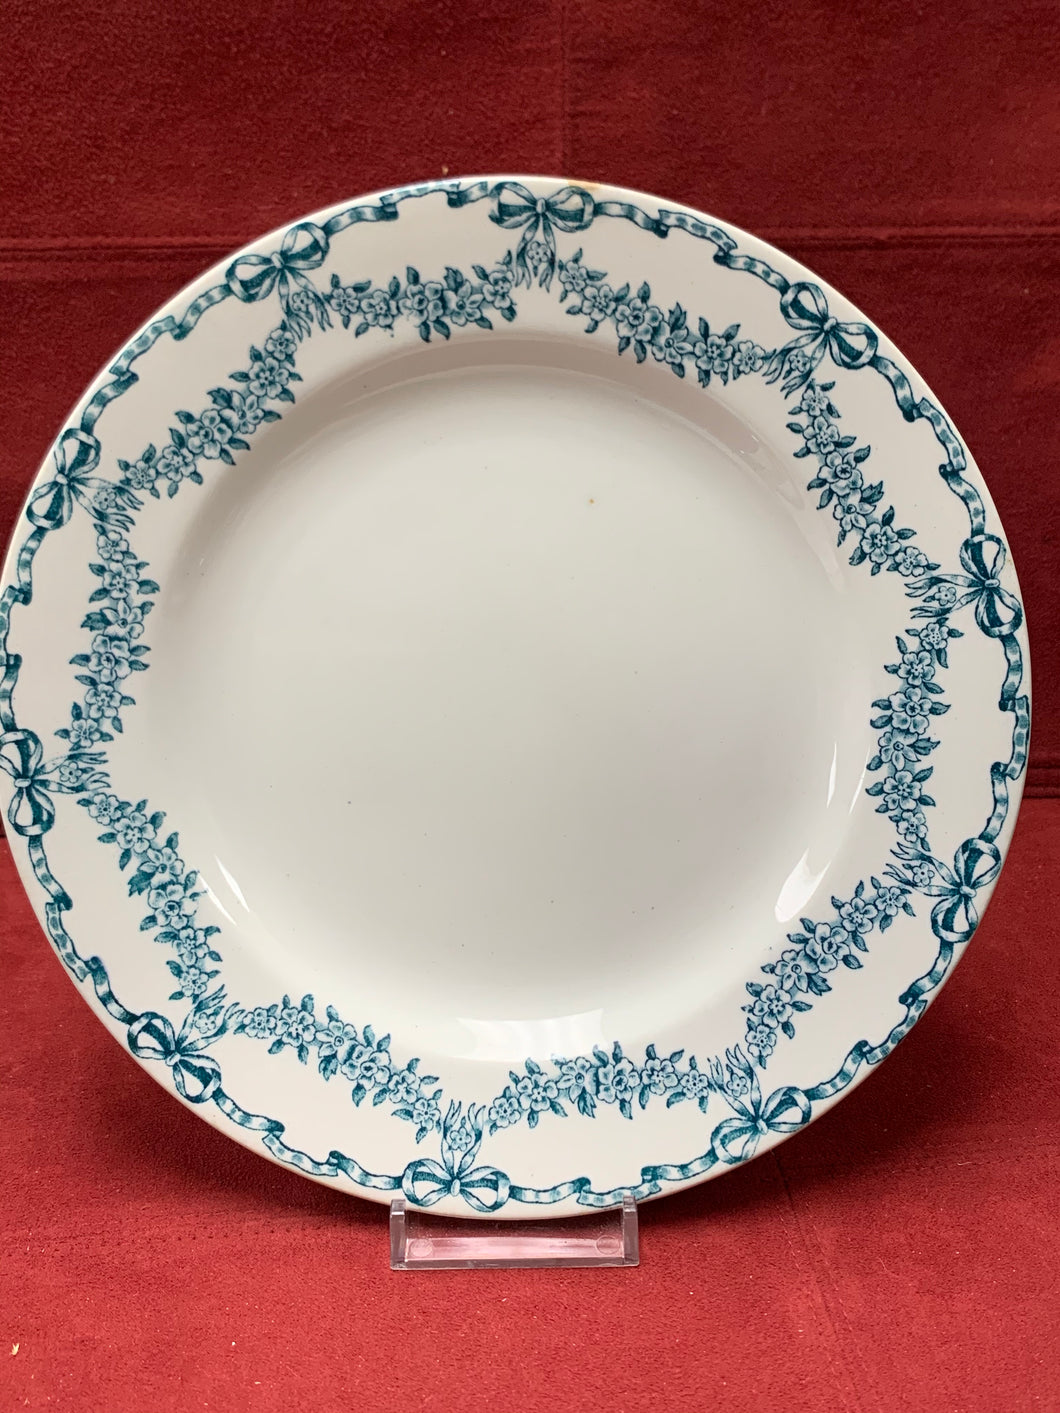 Losol Ware, England. Luncheon Plates. Set of 6. Teal Blue on White. Selkirk. 8-1/2